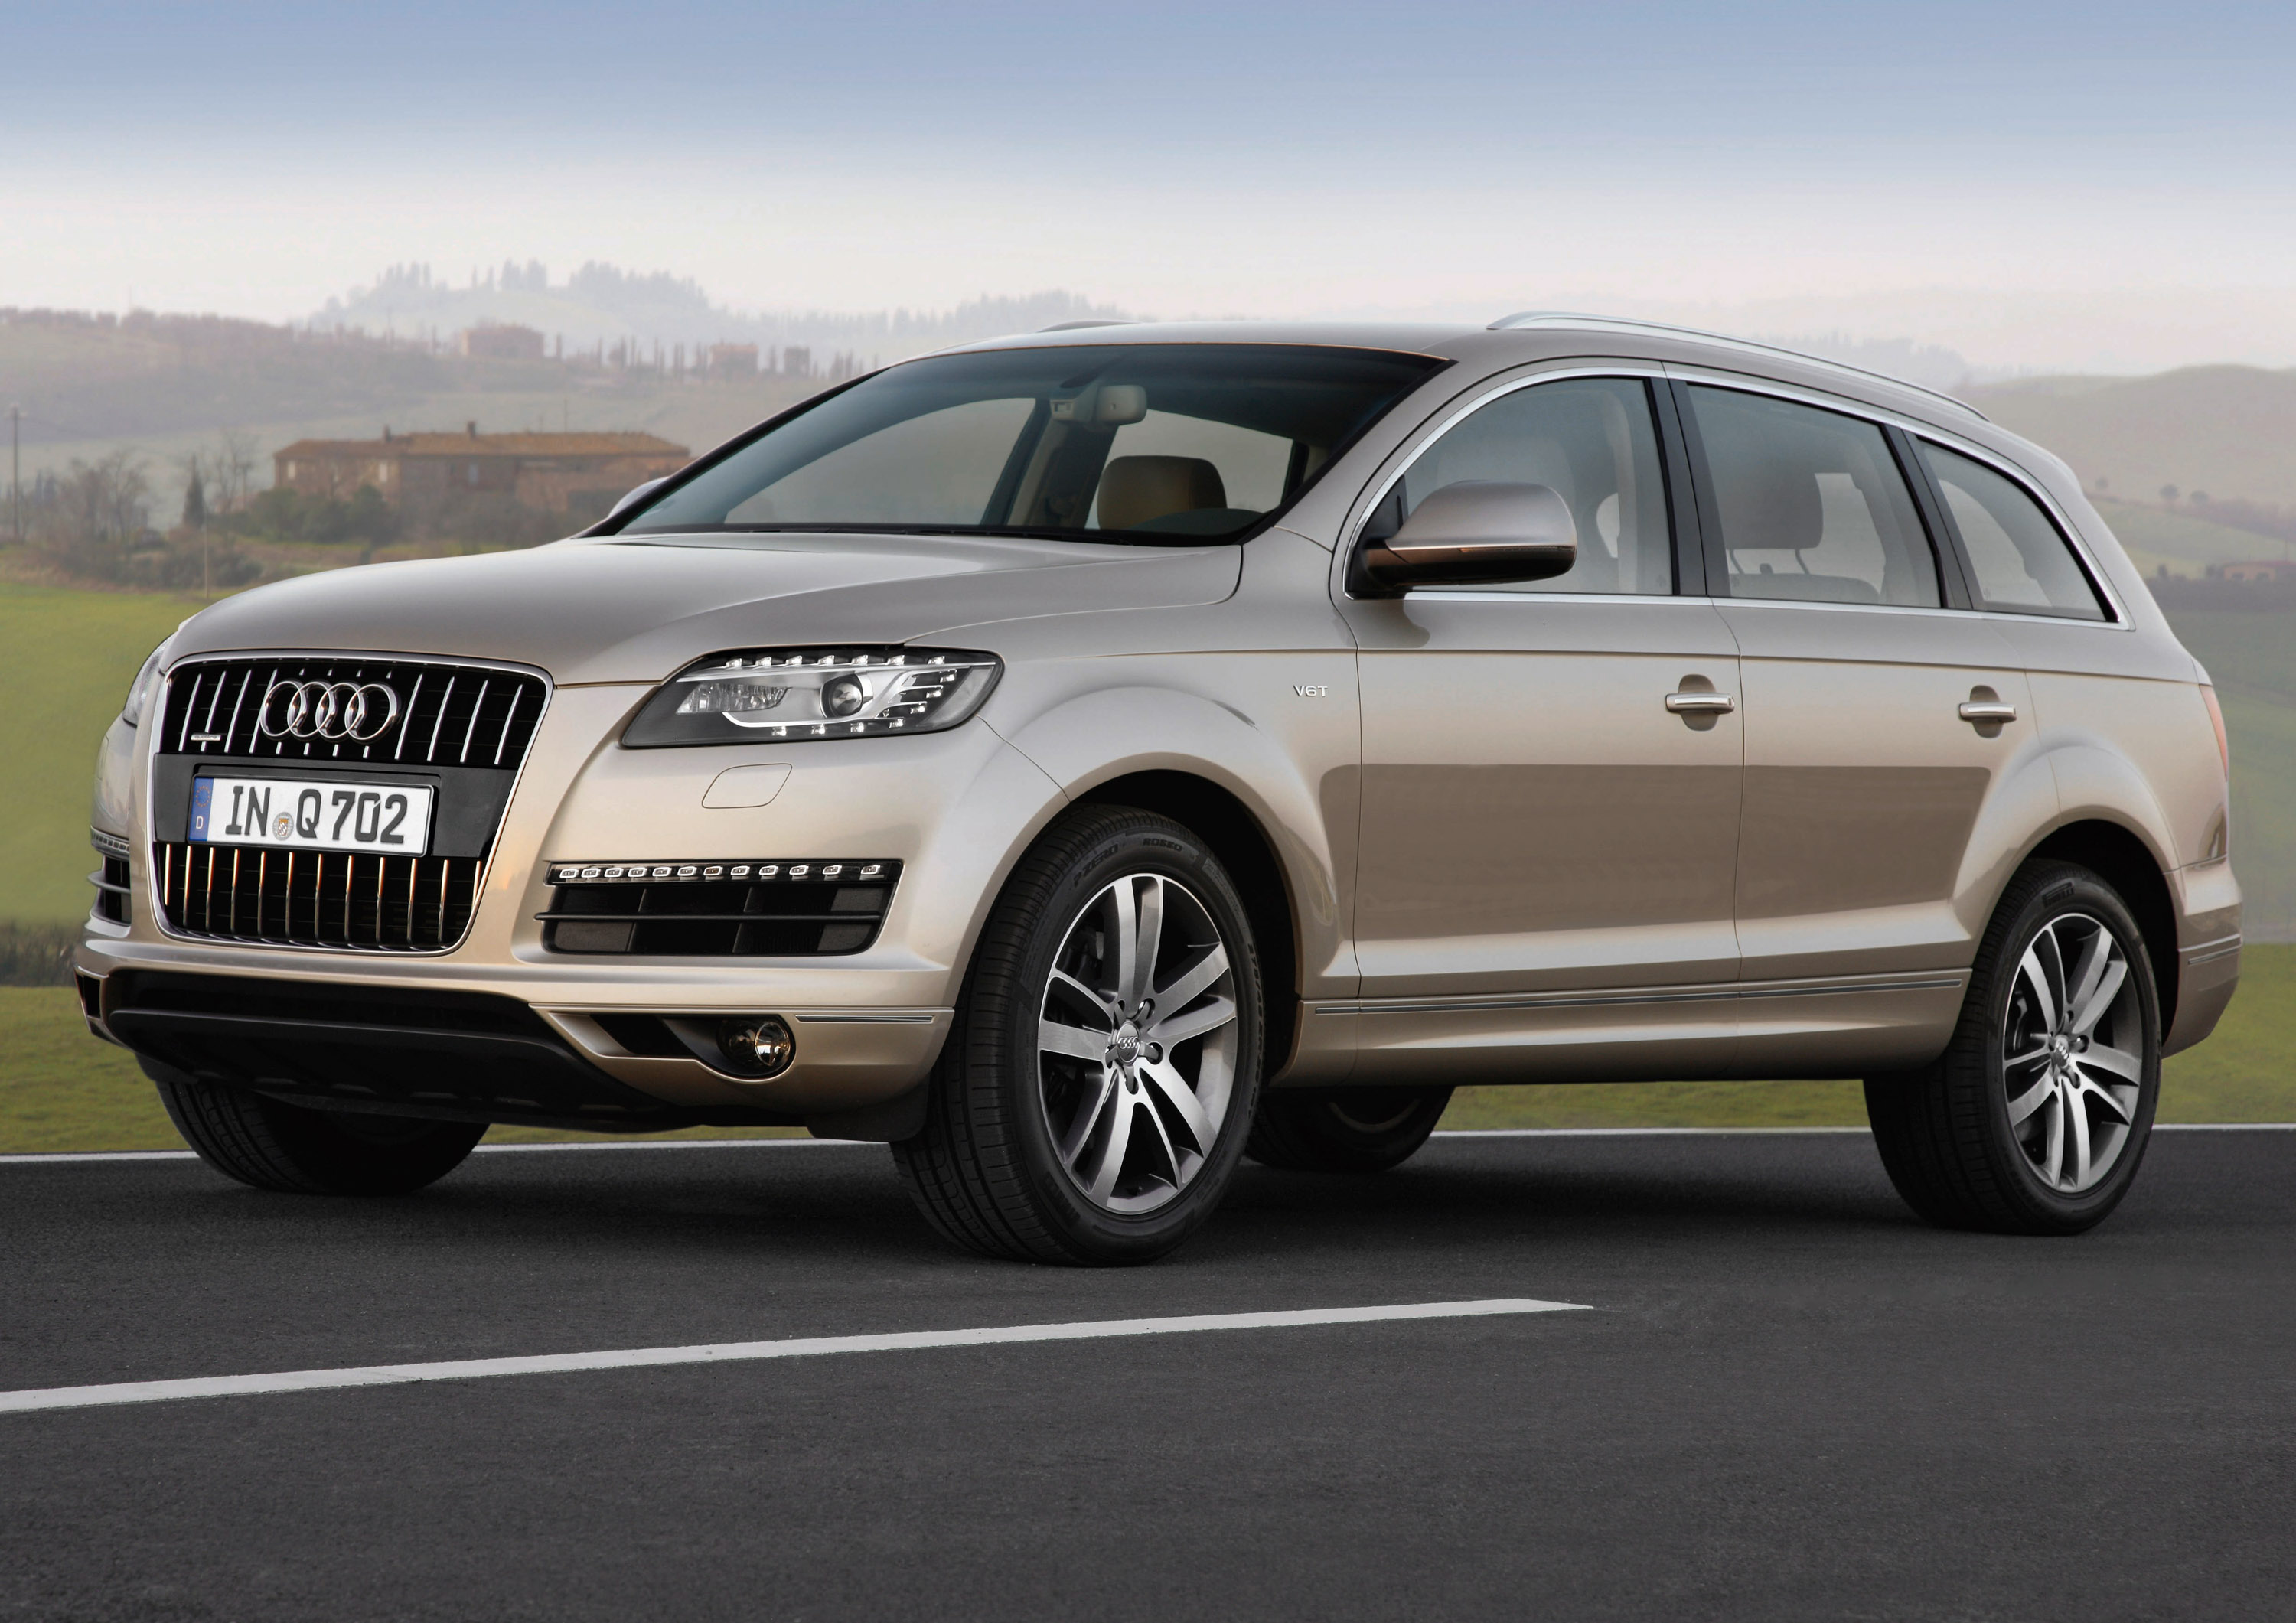 audi q7 3 0 tdi quattro luxury meets efficieny. Black Bedroom Furniture Sets. Home Design Ideas